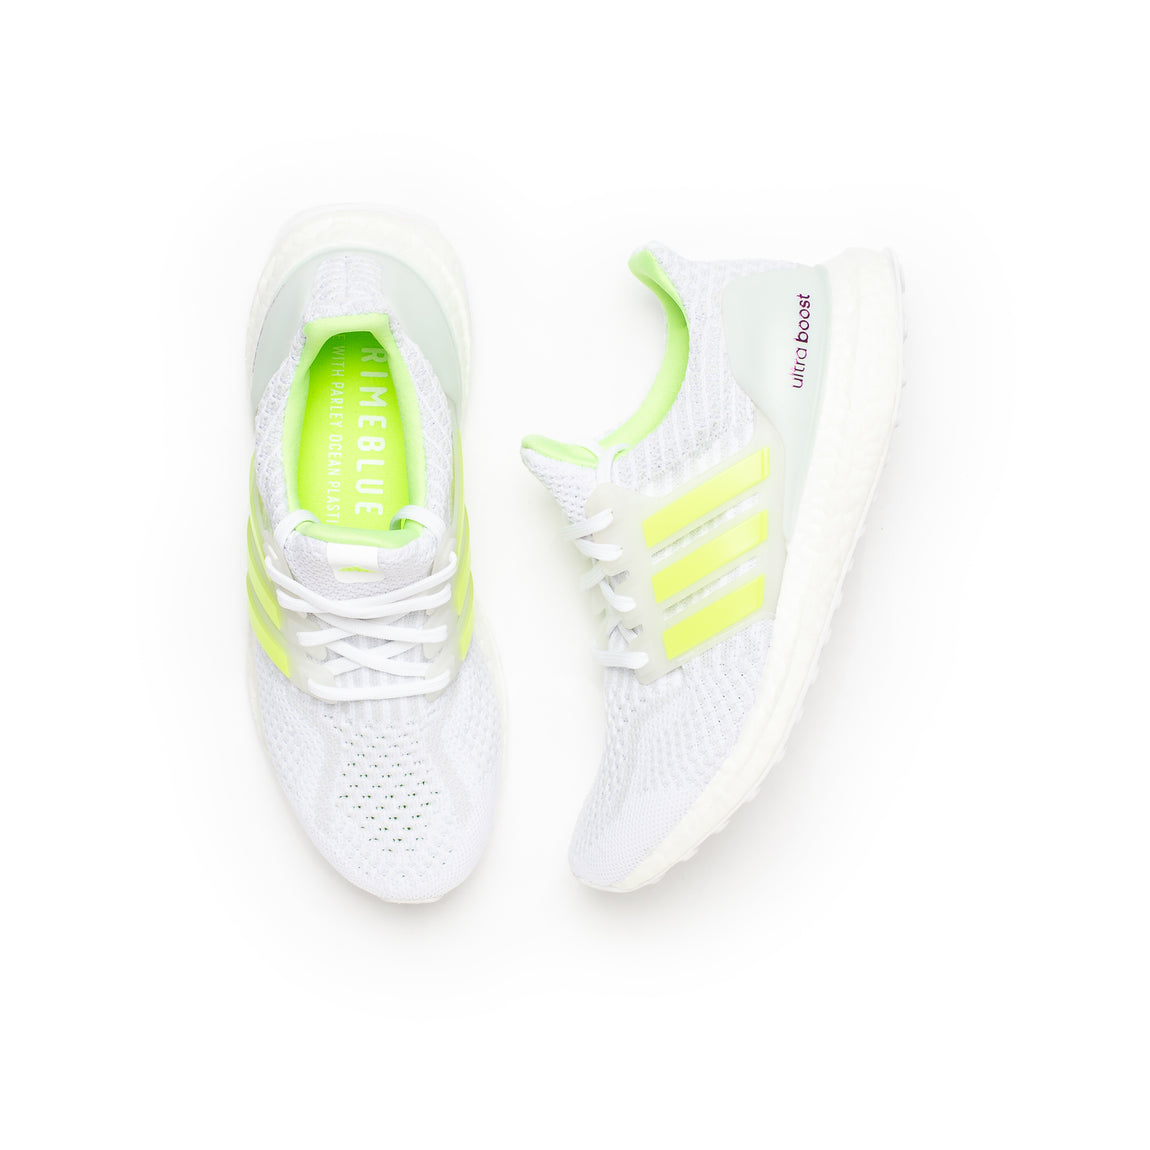 Adidas Women's UltraBoost 5.0 DNA (White/Signal Green/Dash Grey) - Adidas Women's UltraBoost 5.0 DNA (White/Signal Green/Dash Grey) -